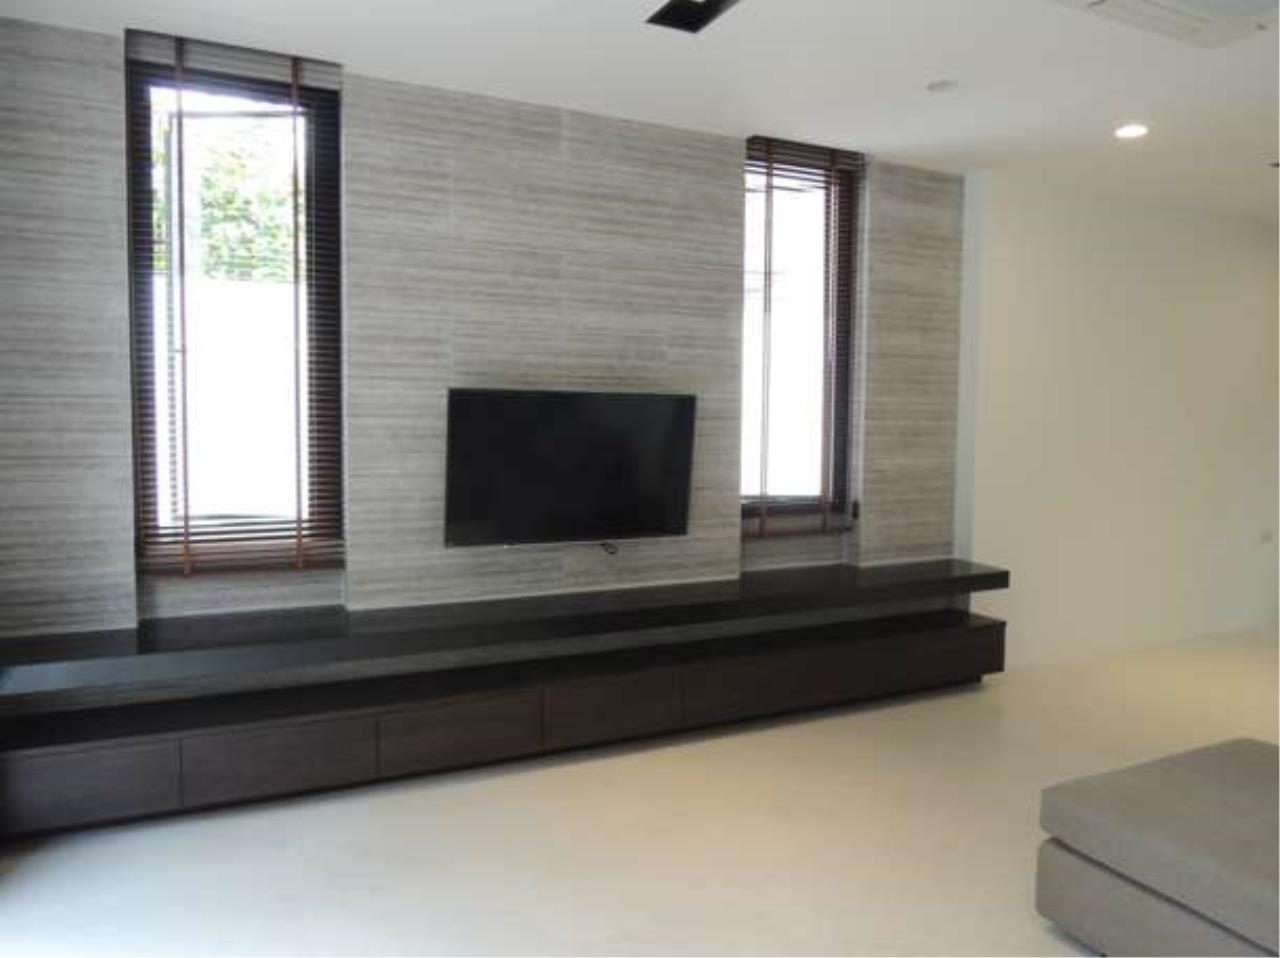 Right Move Thailand Agency's HR423 House For Sale  60,000,000 THB  - 4 Bedrooms - 315 sqm. 3